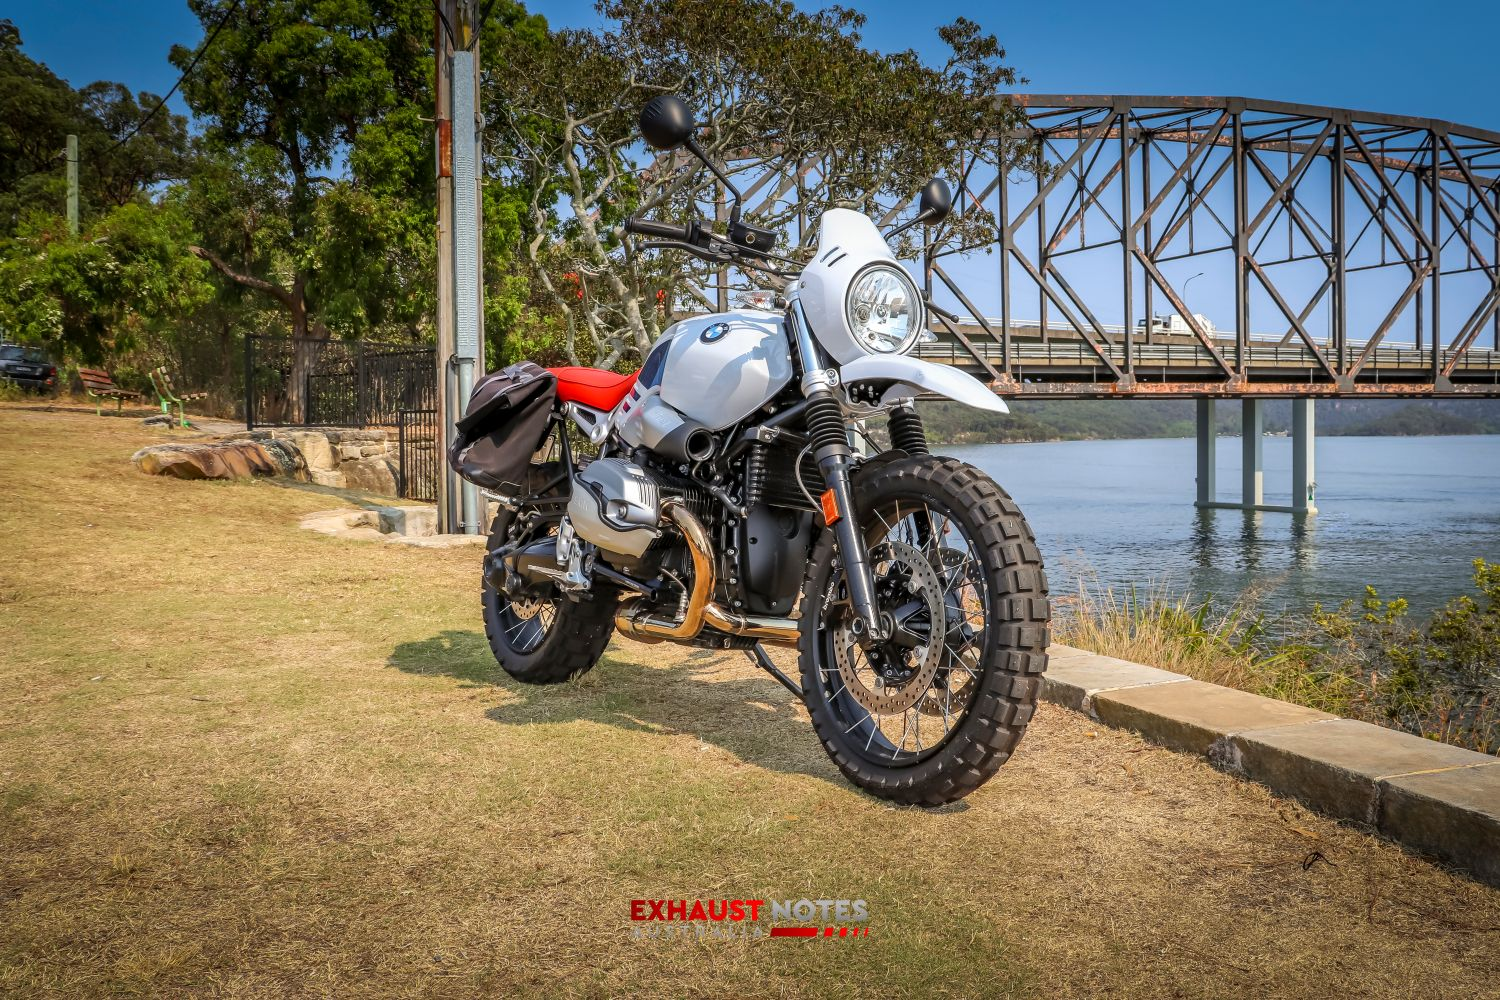 BMW Motorrad R nineT Urban G/S: Naked bike with character